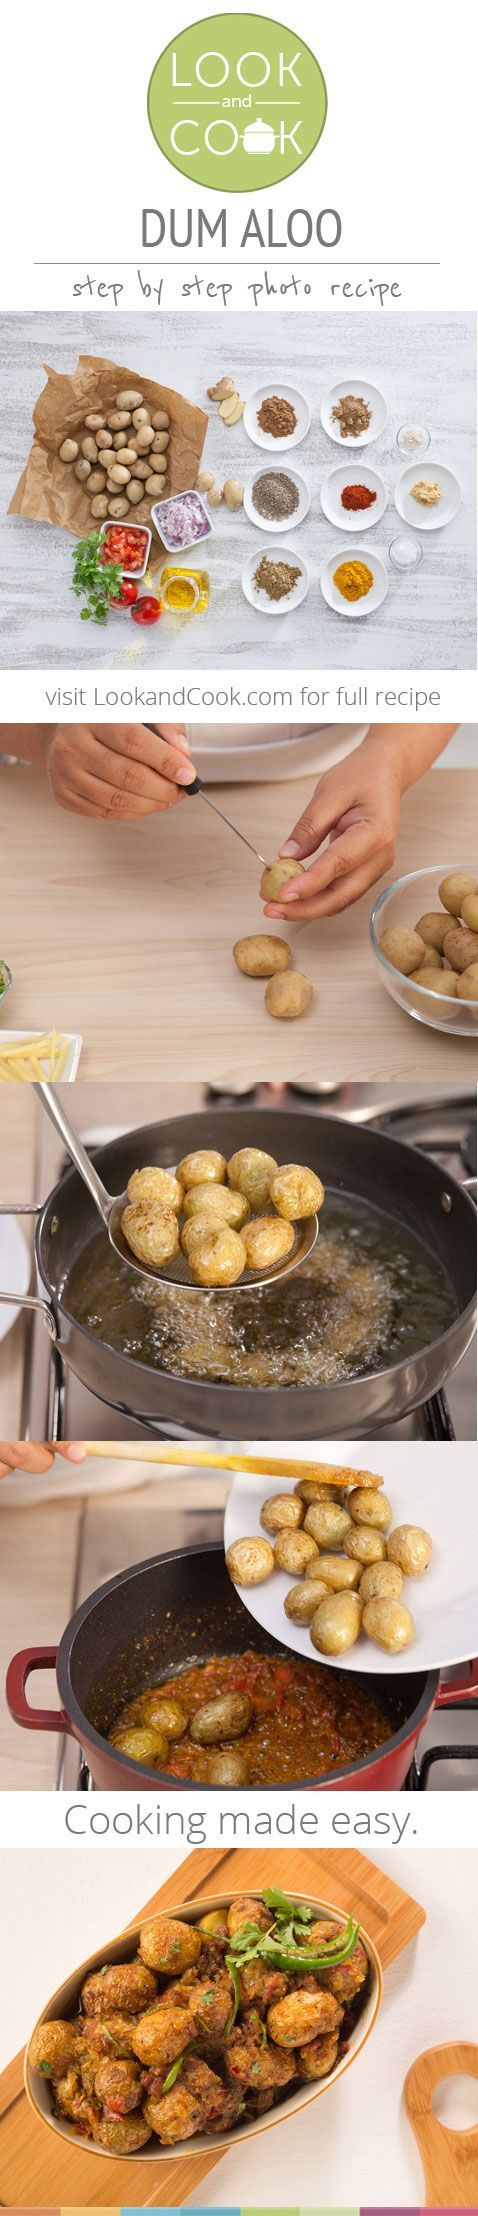 Dum Aloo(#LC14027):Dum Aloo recipe is a Kashmiri- style dish where potatoes are deep fried, then cooked slowly at a low flame in a succulent creamy gravy